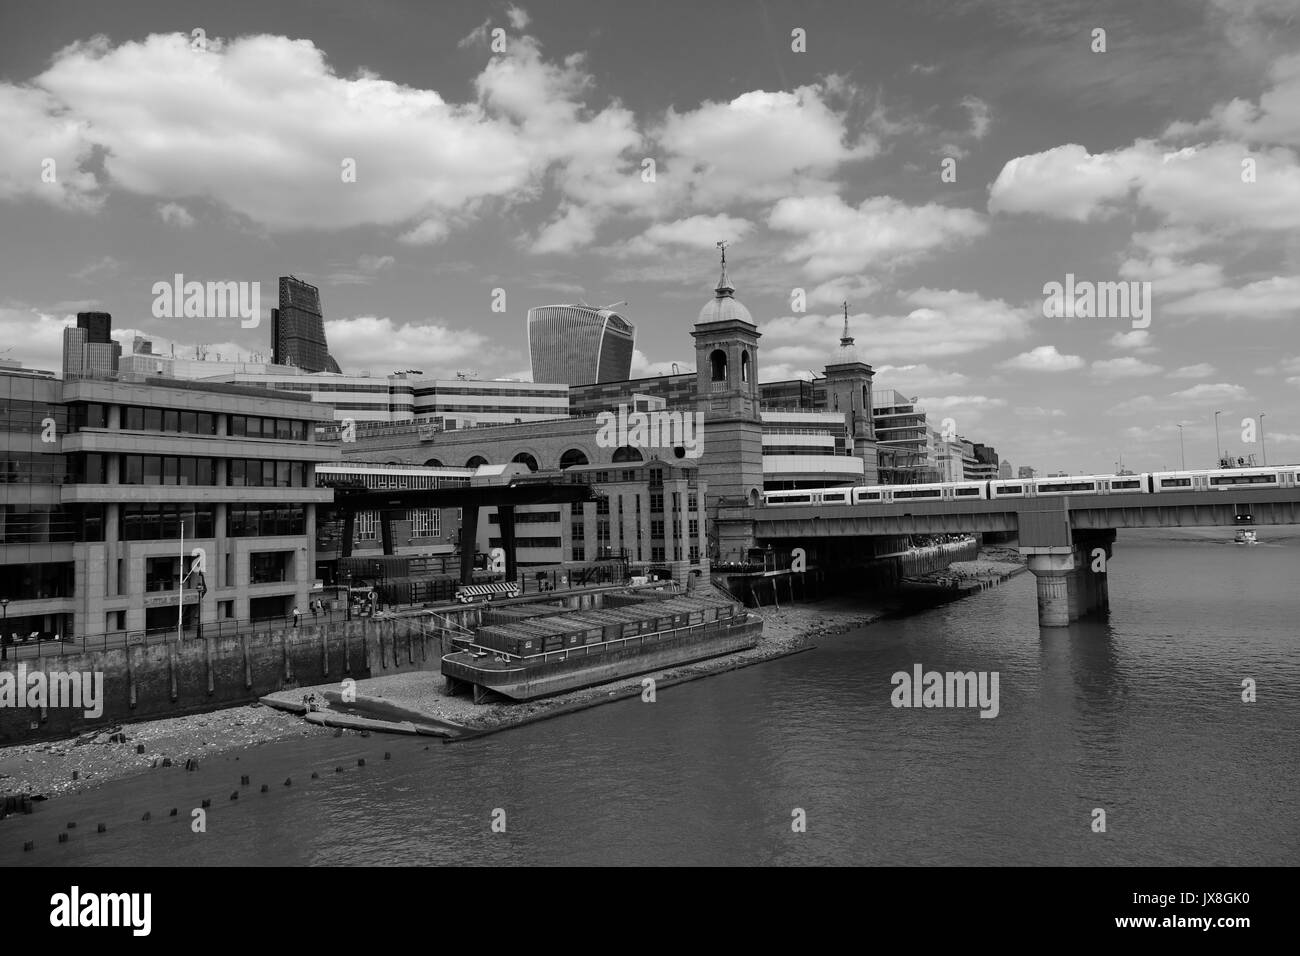 The view from Southwark Bridge showing a train leaving Cannon Street Station, the bank of the Thames and London's skyscrapers in the background. - Stock Image